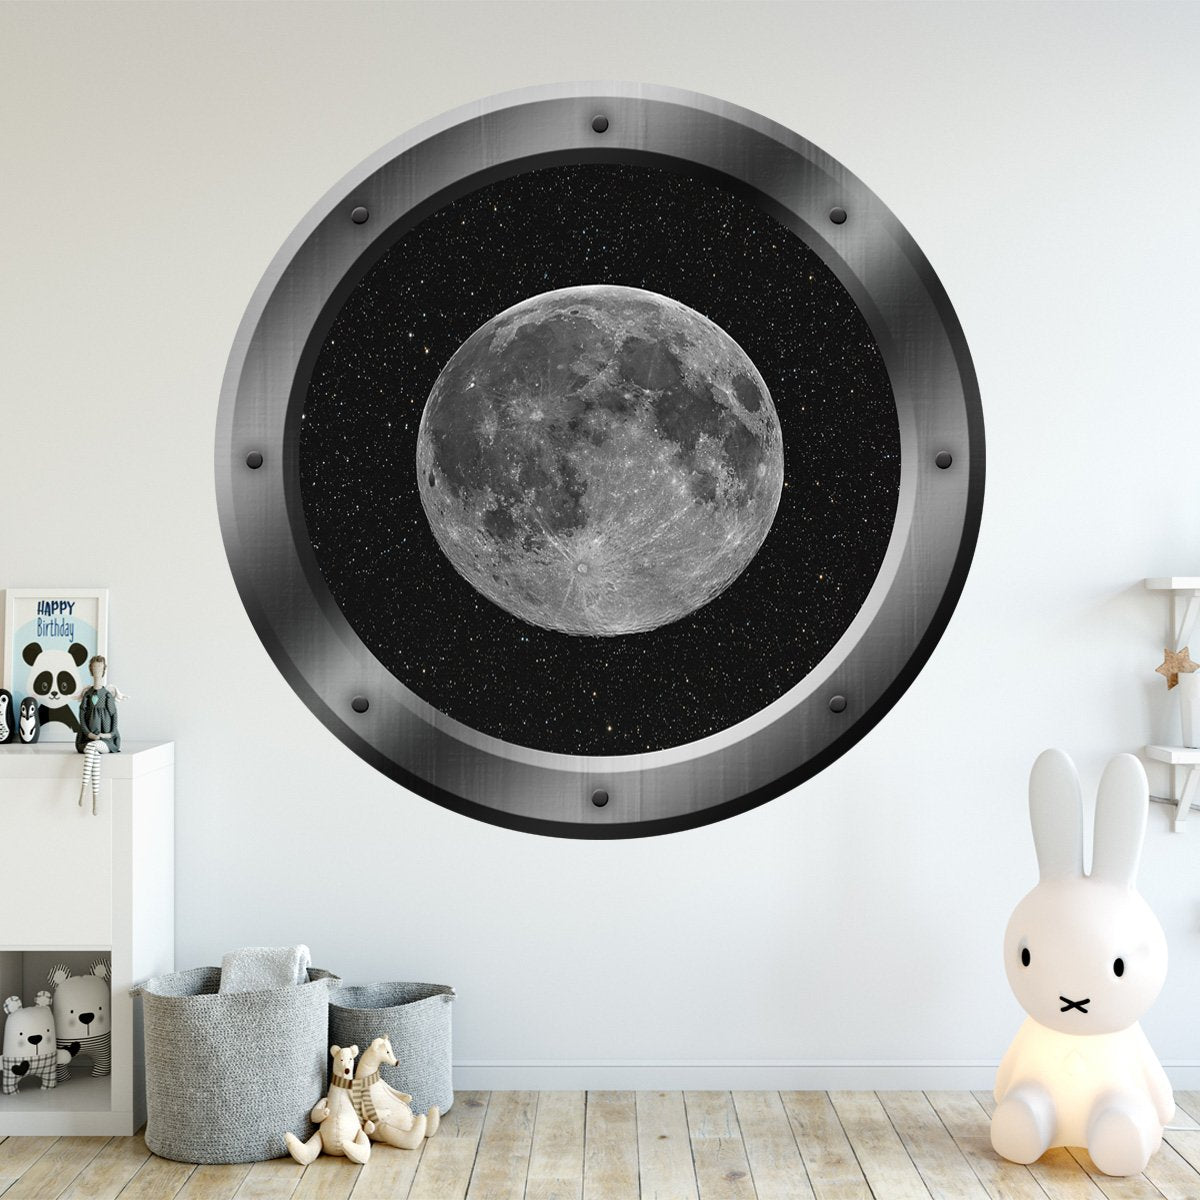 Space Ship Window Porthole Moon View Peel N Stick Vinyl Wall Decal